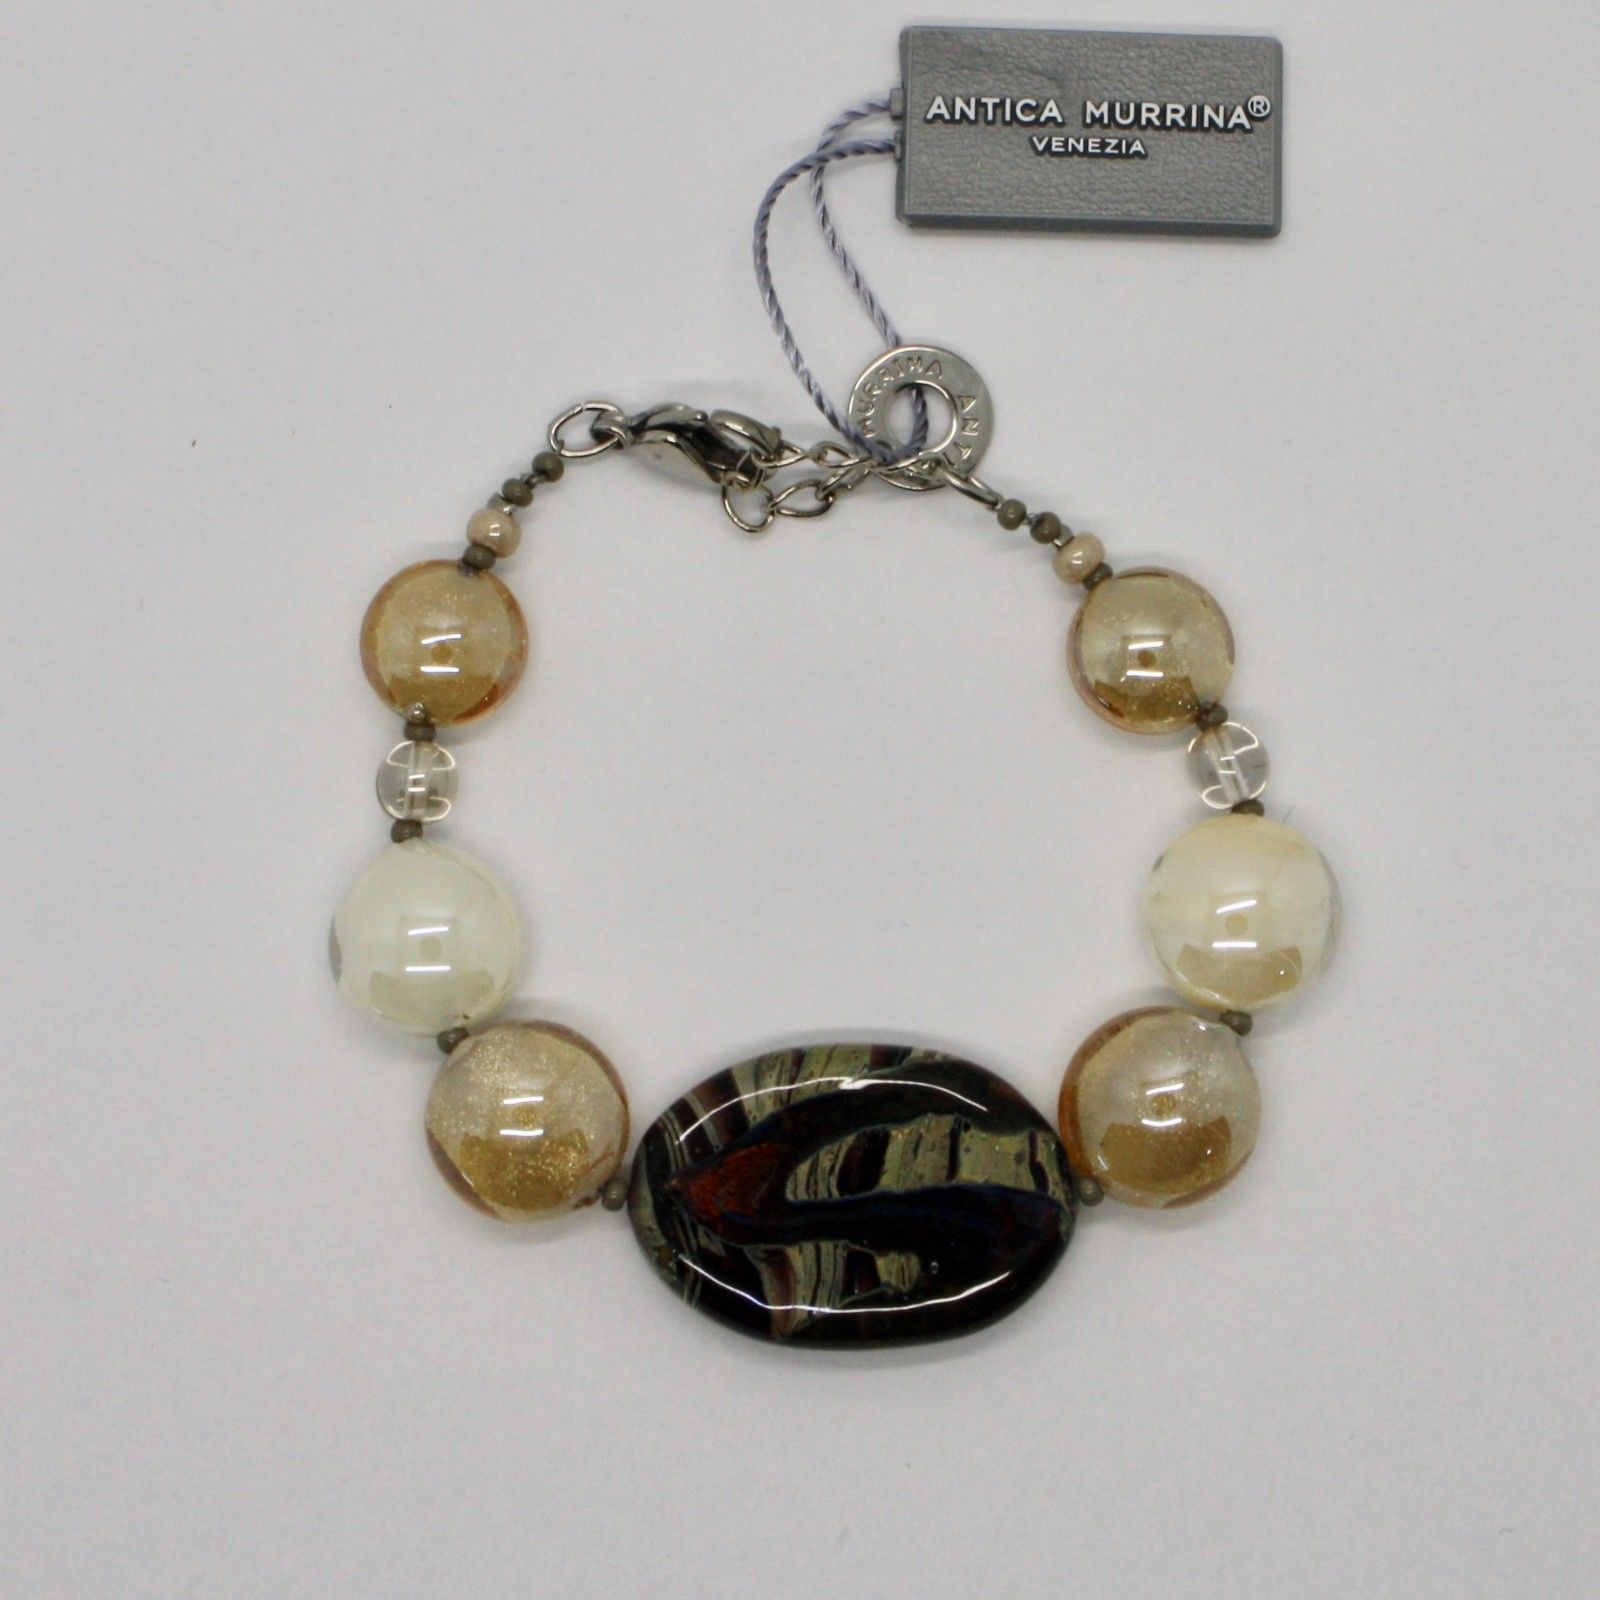 ANTICA MURRINA VENEZIA BRACELET WITH MURANO GLASS BROWN BEIGE GOLD BR794A10